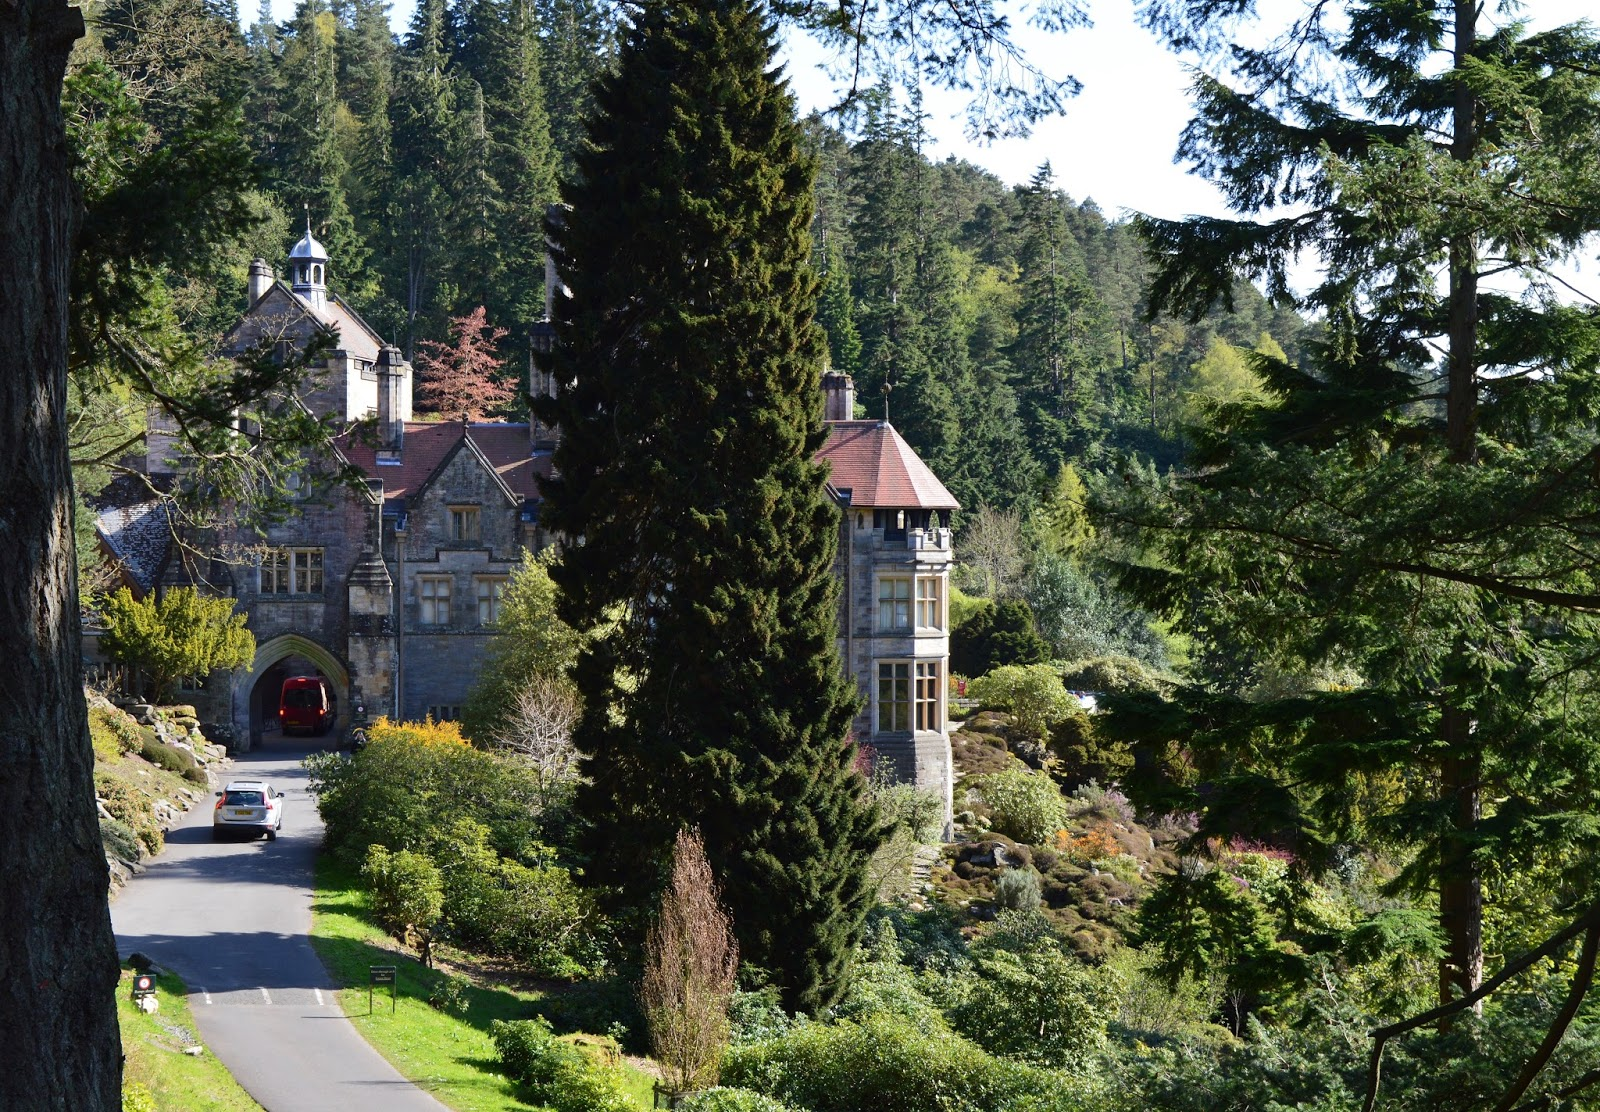 The Labyrinth at Cragside - view of the house